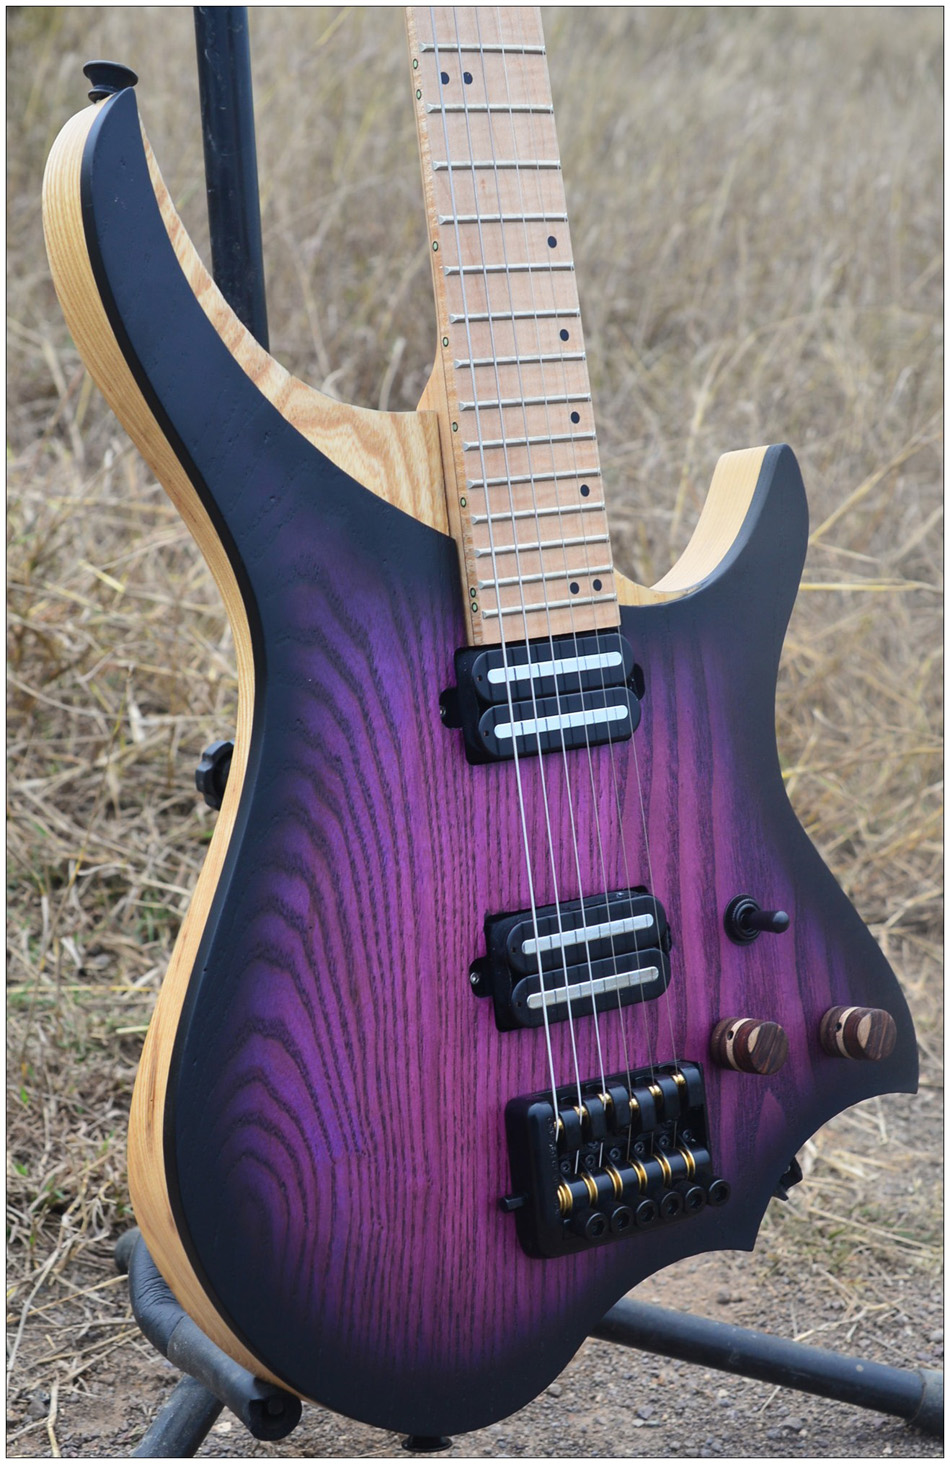 NK Headless Electric Guitar Model  Purple Burst Color Flame Maple Neck In Stock Guitar Free Shipping